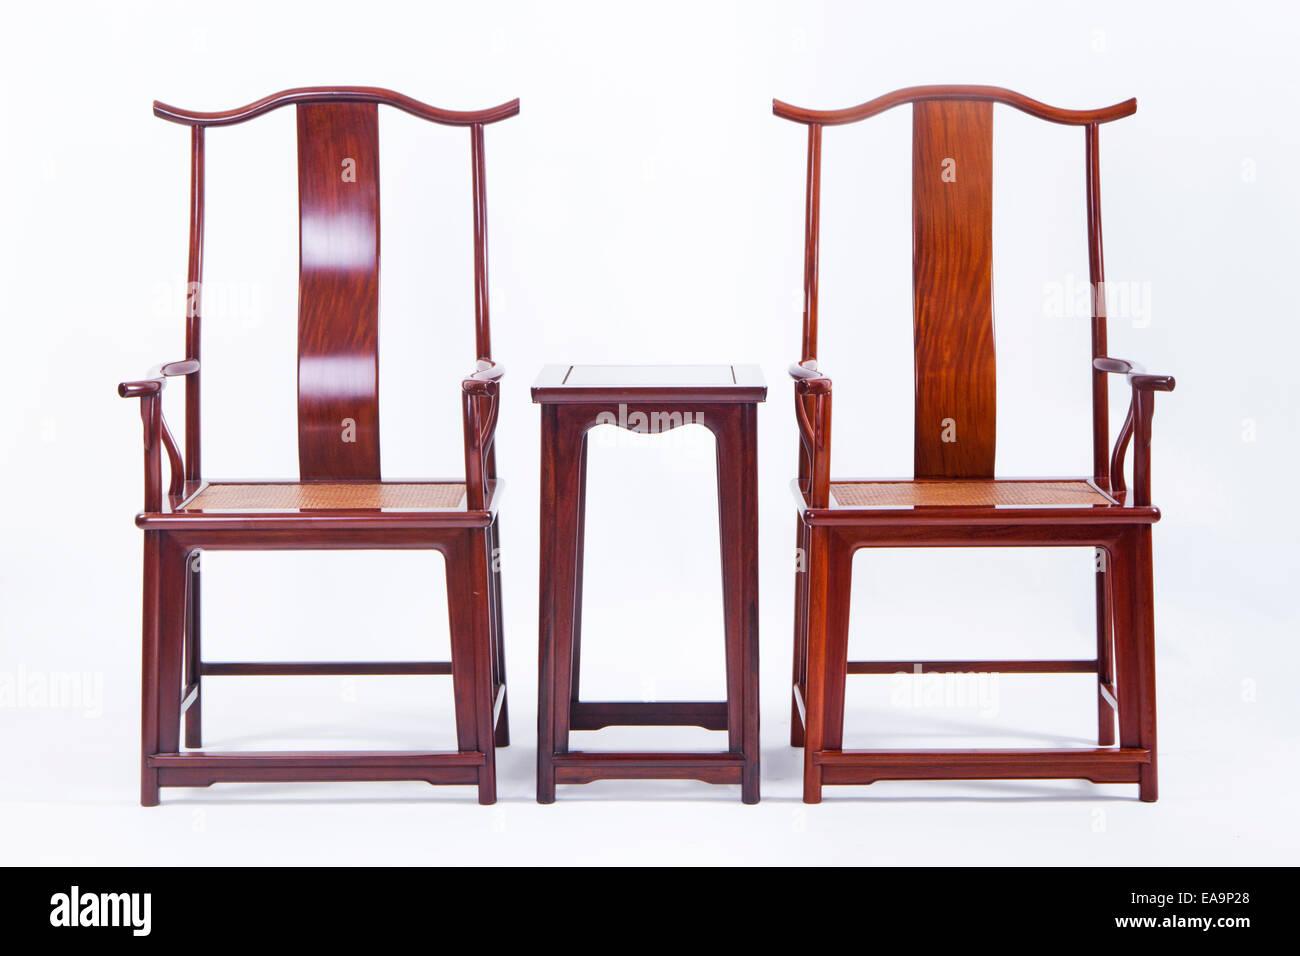 Antique Chinese chair - Antique Chinese Chair Stock Photo, Royalty Free Image: 75202912